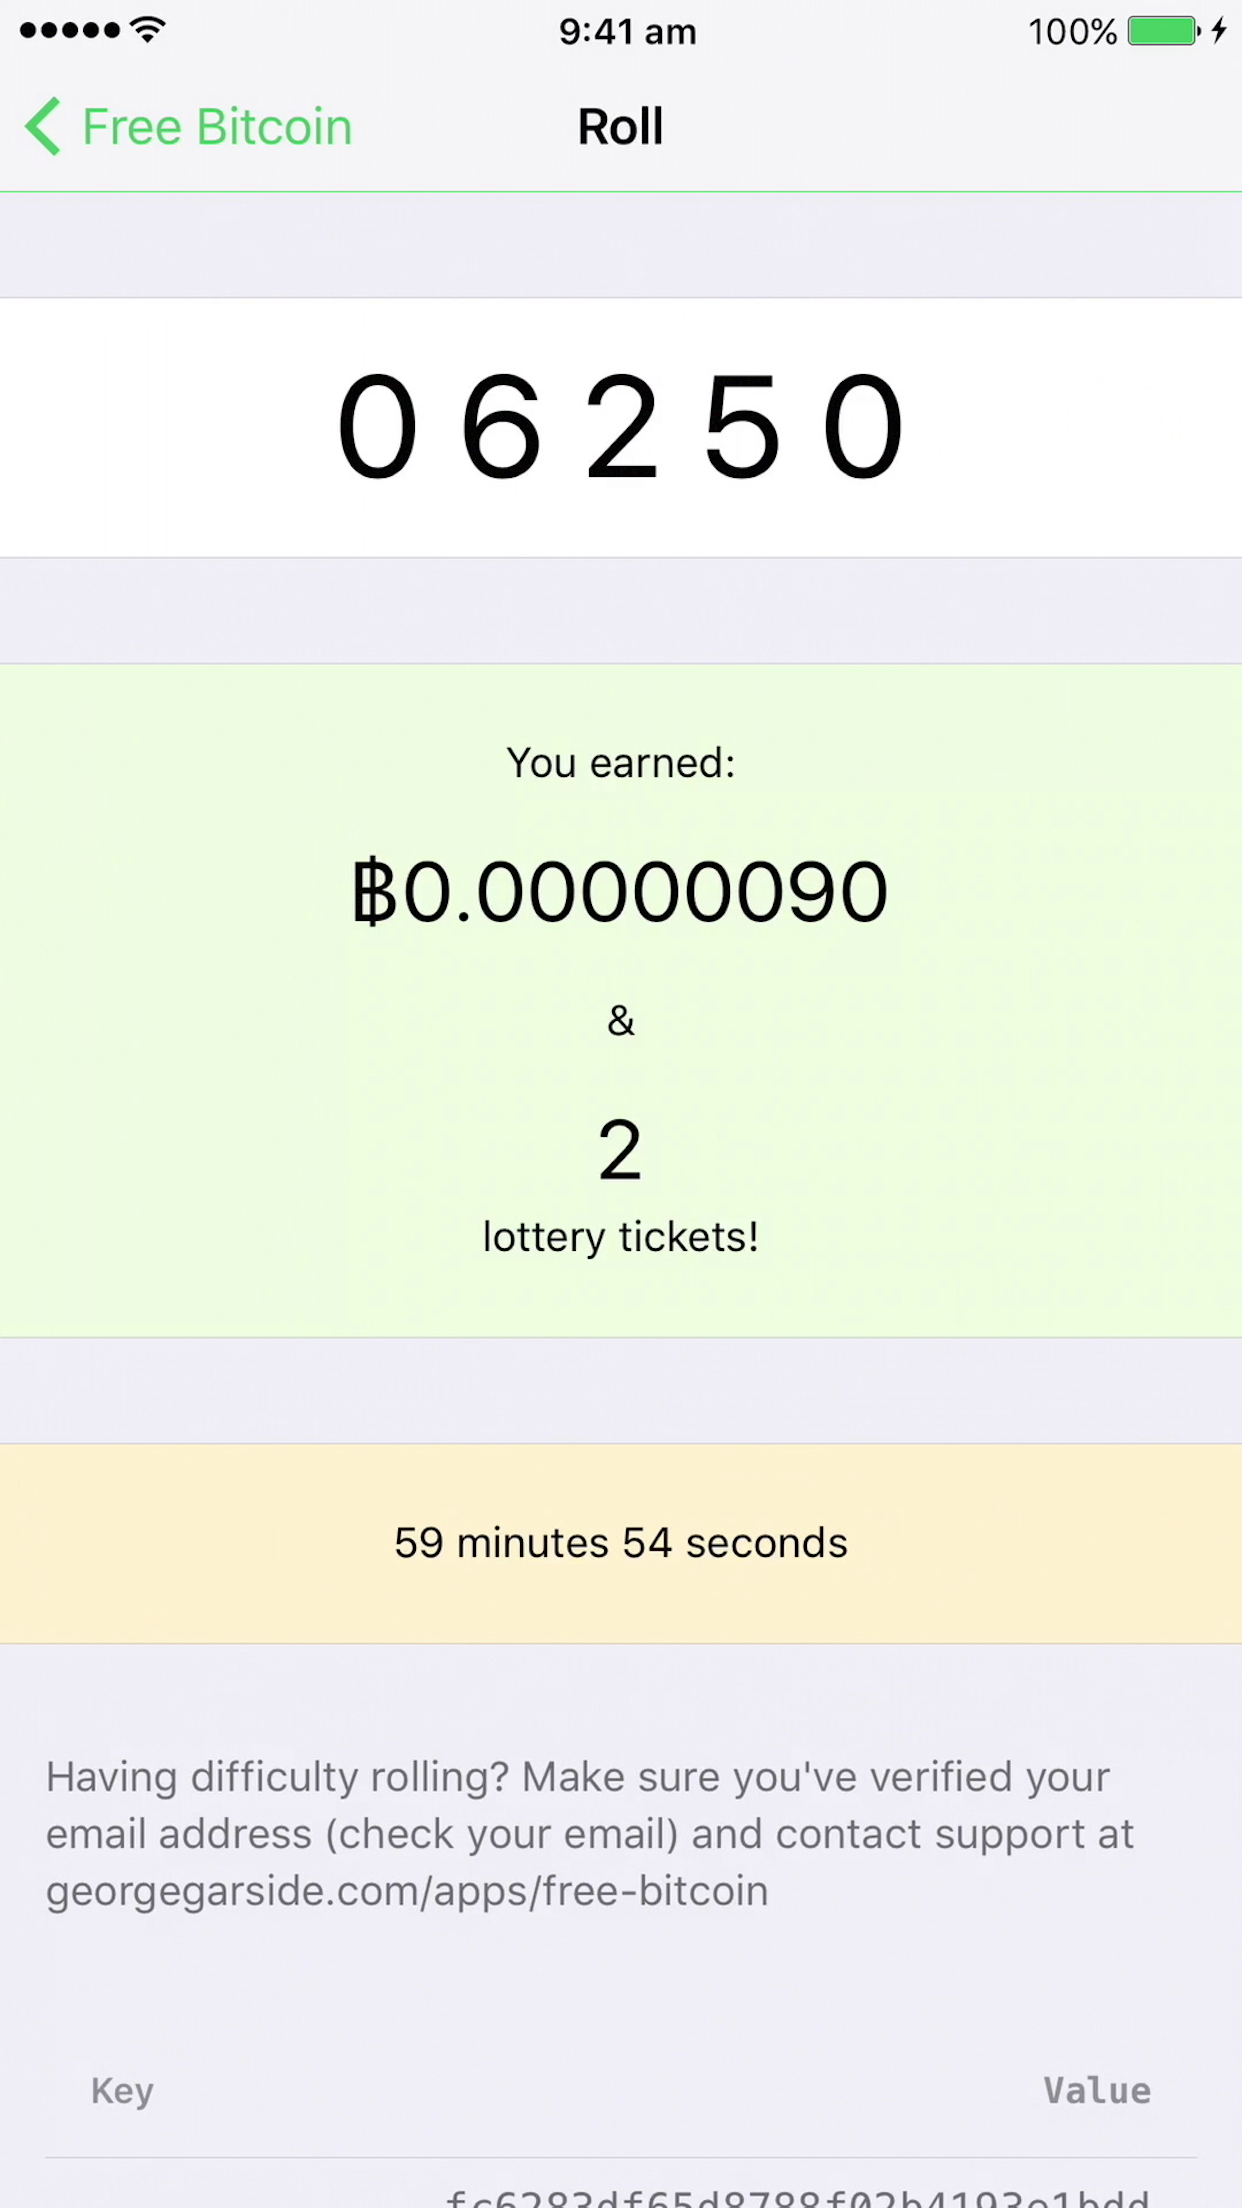 Rolled random number for bitcoin faucet